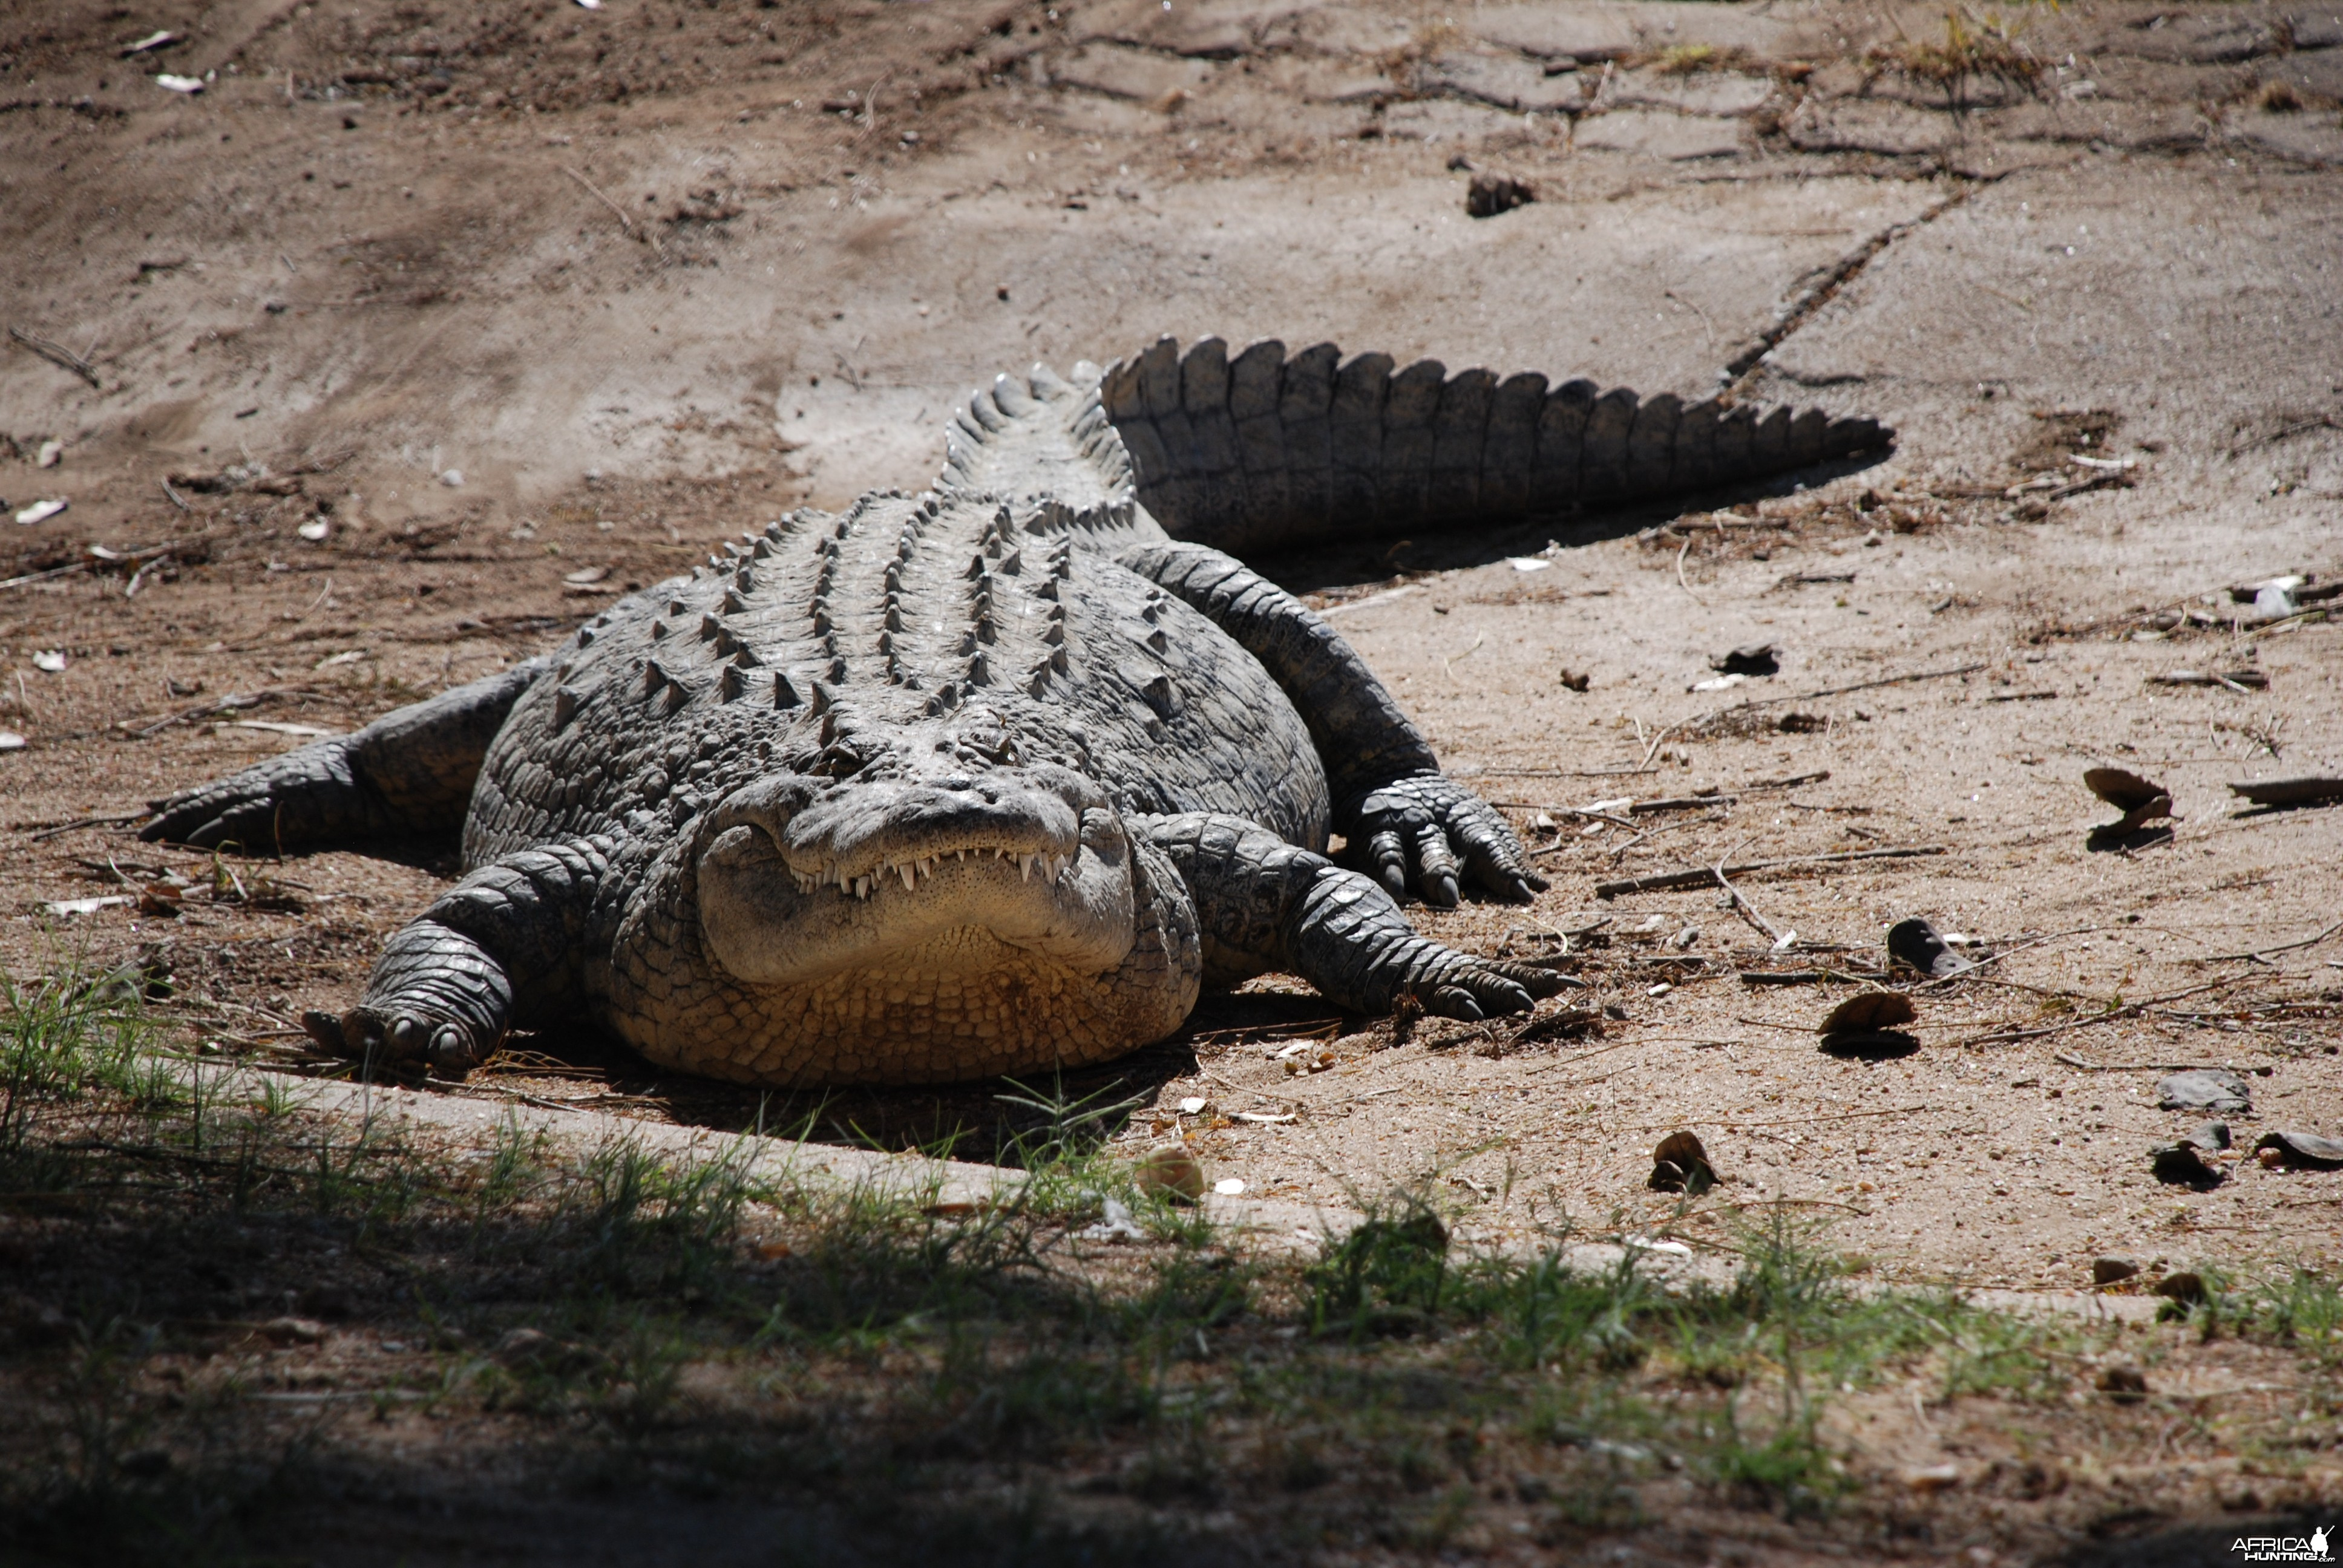 Croc at Croc farm in Namibia